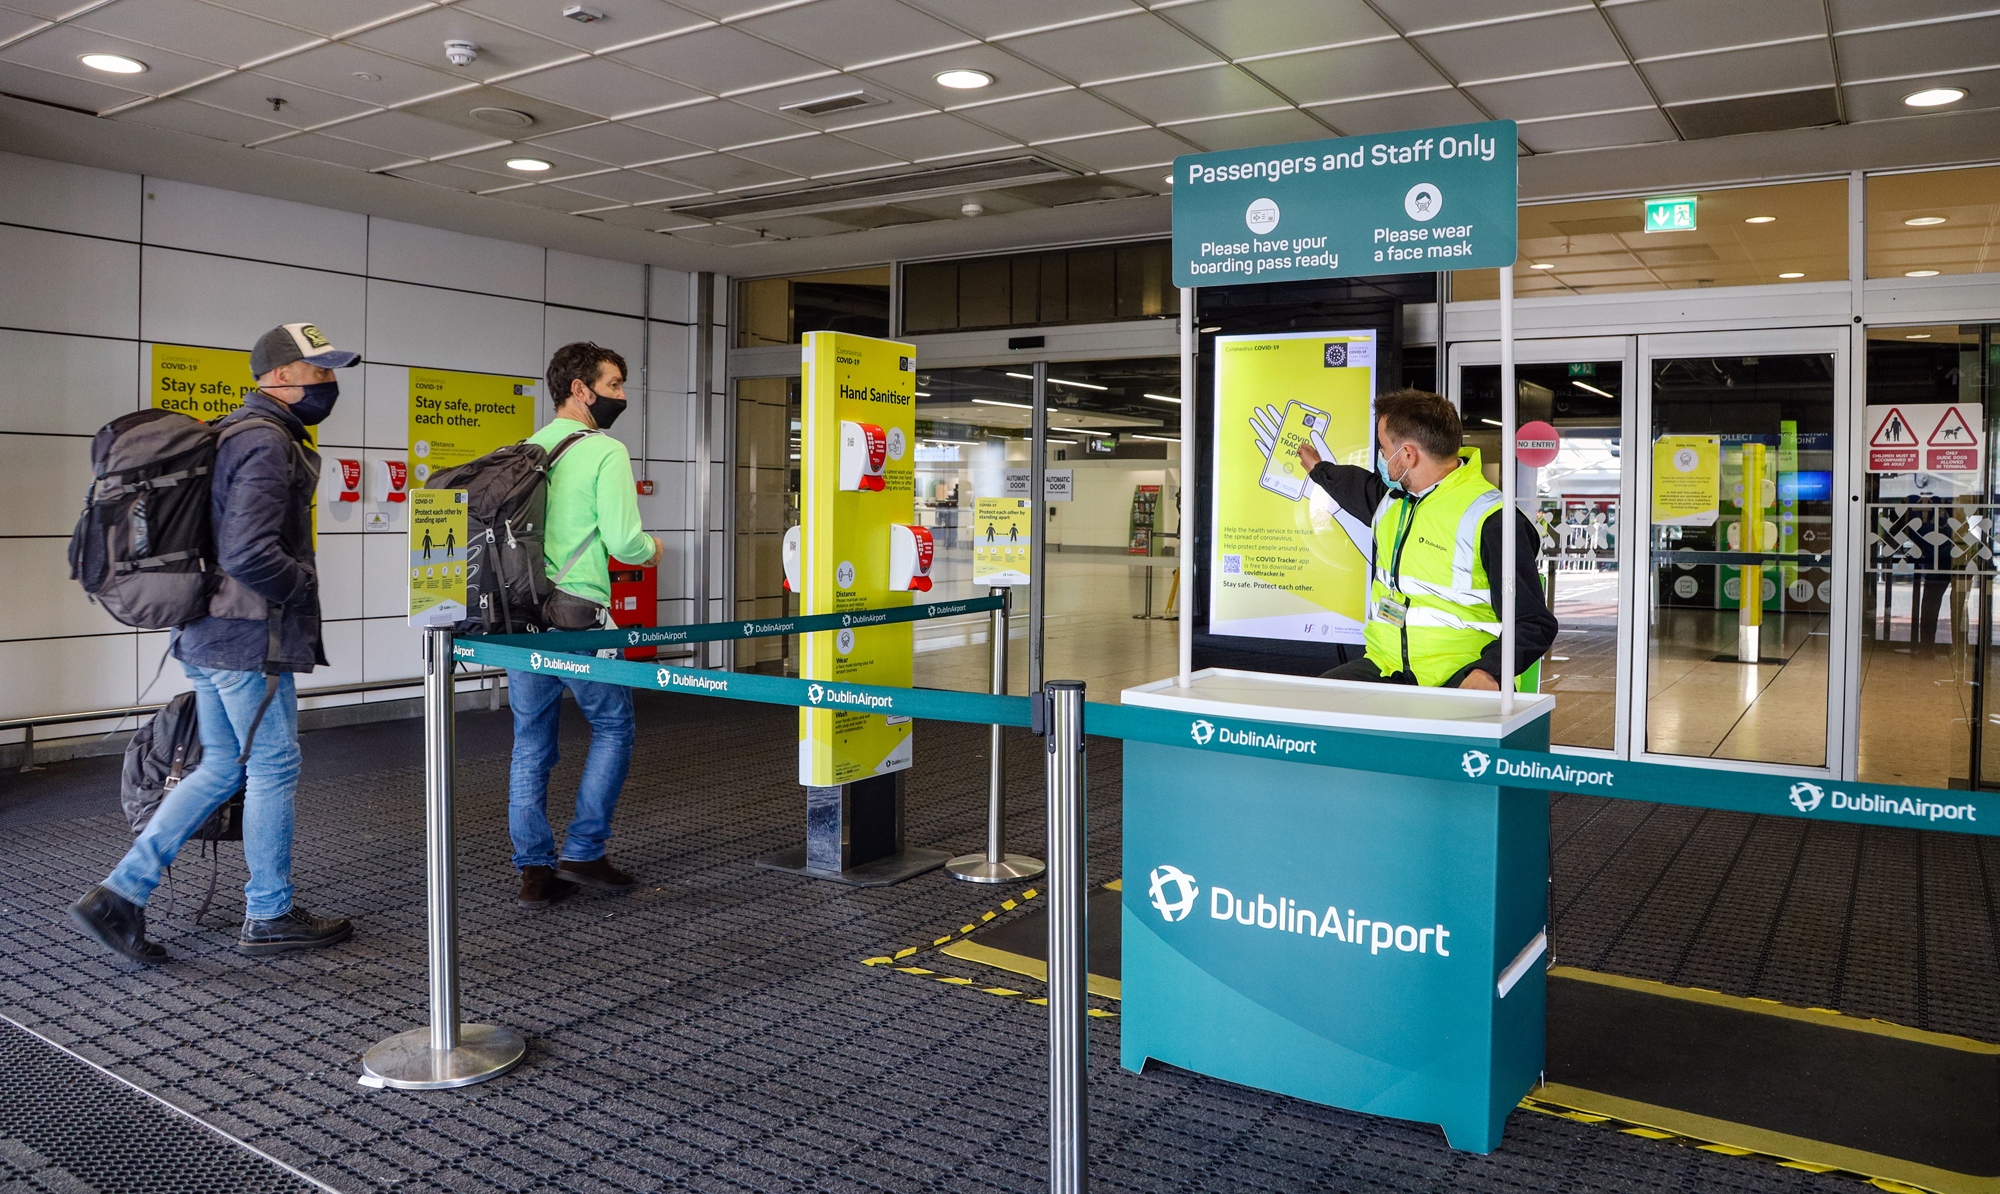 Image by Dublinairport.com